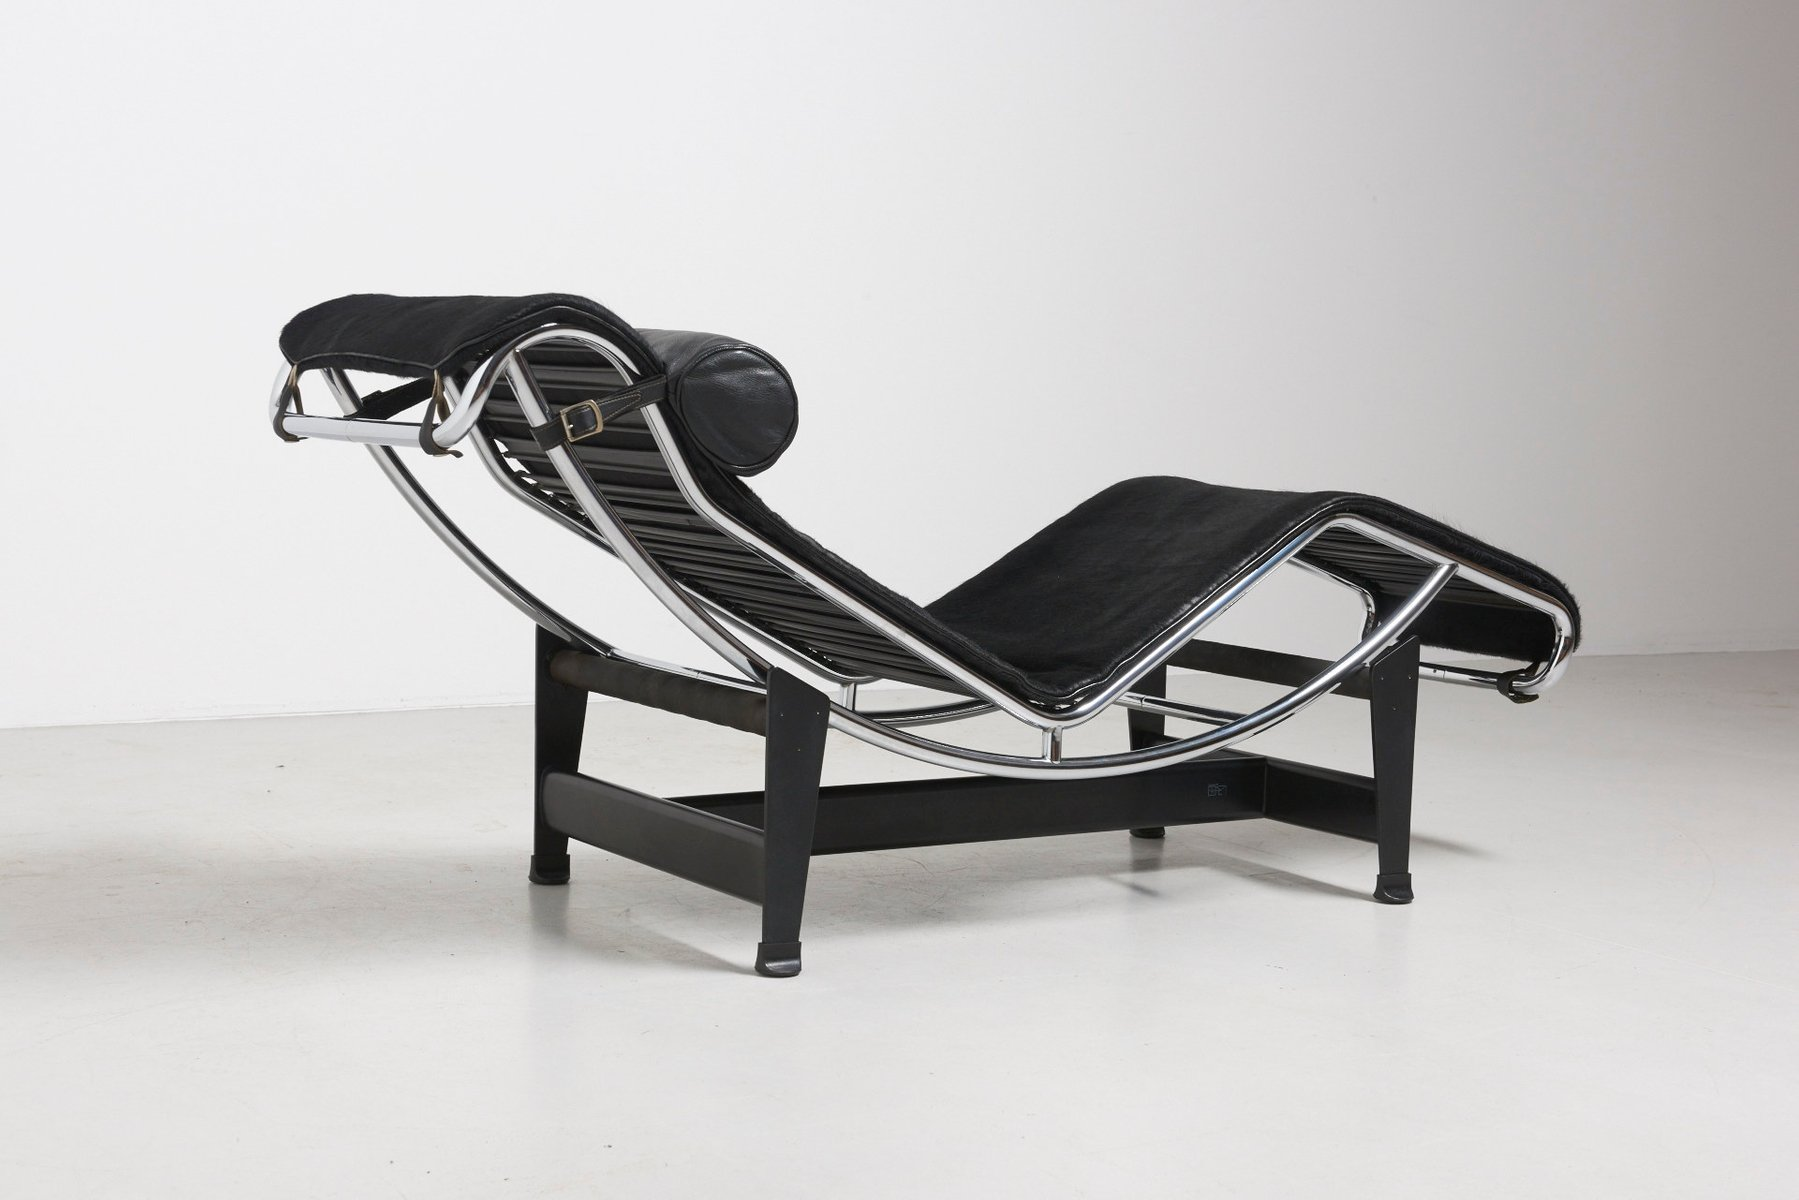 Vintage lc4 chaise lounge by le corbusier for cassina for for Chaise le corbusier lc4